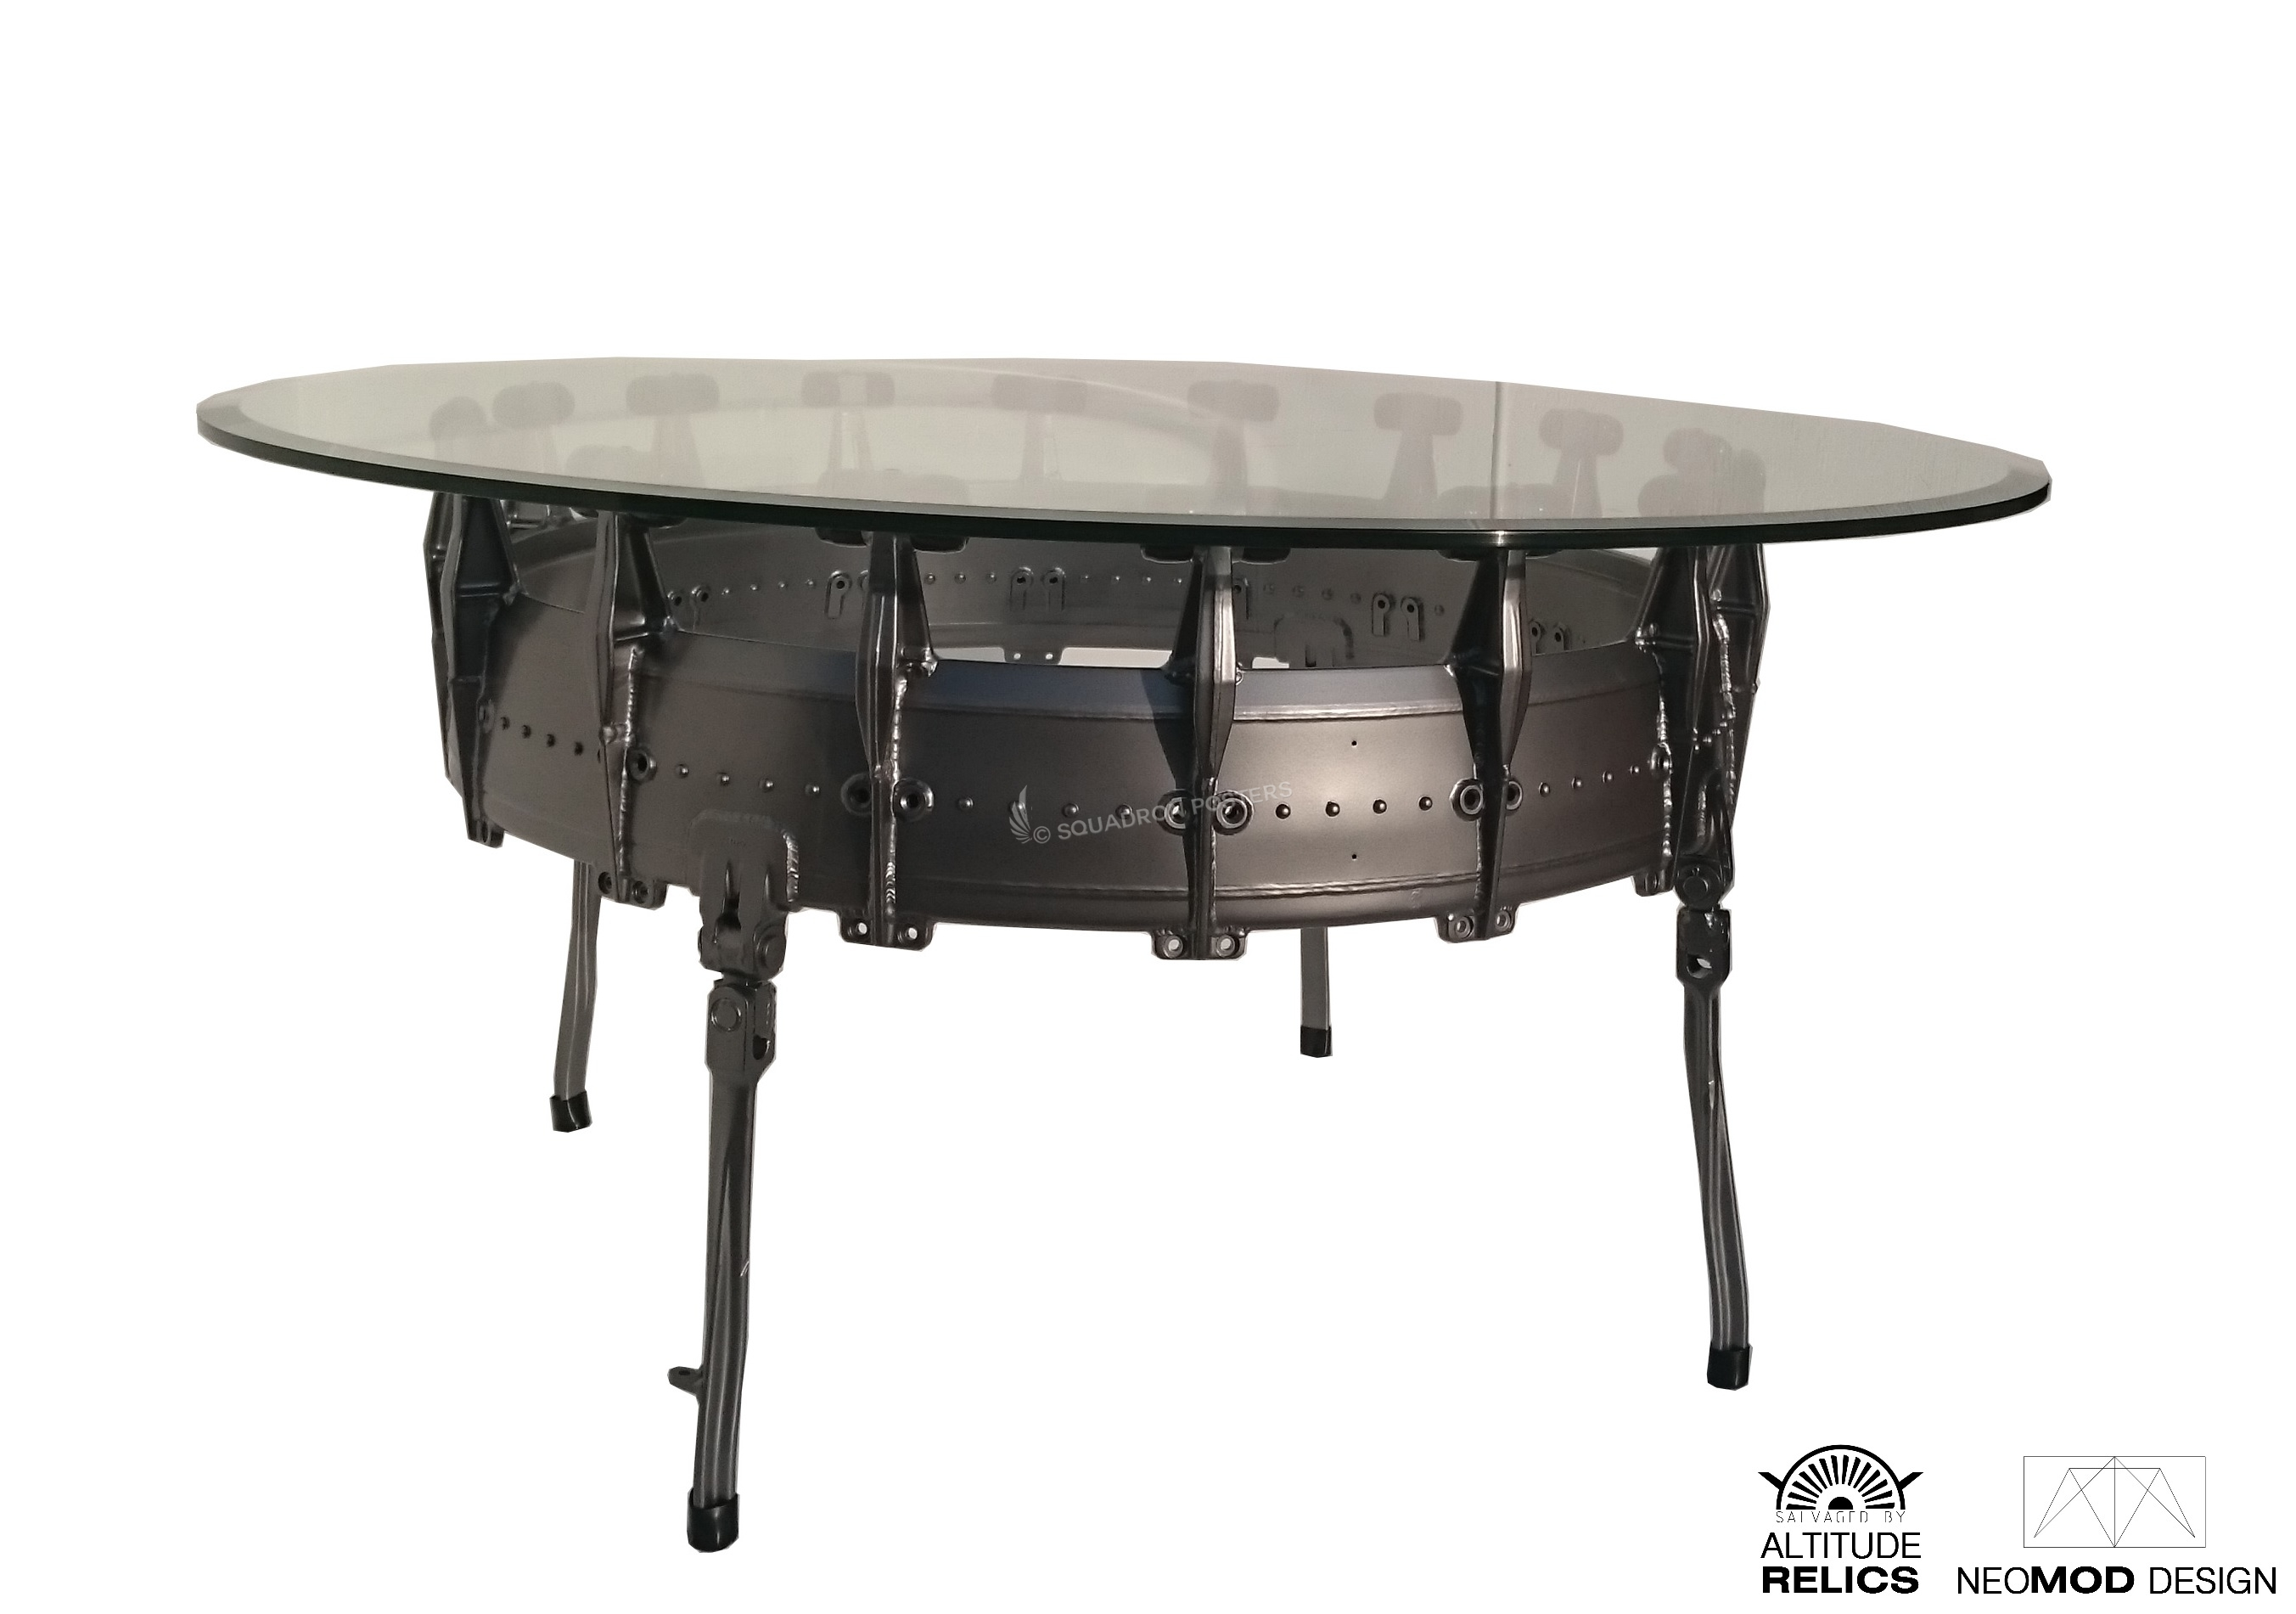 F 4 Phantom Afterburner Coffee table